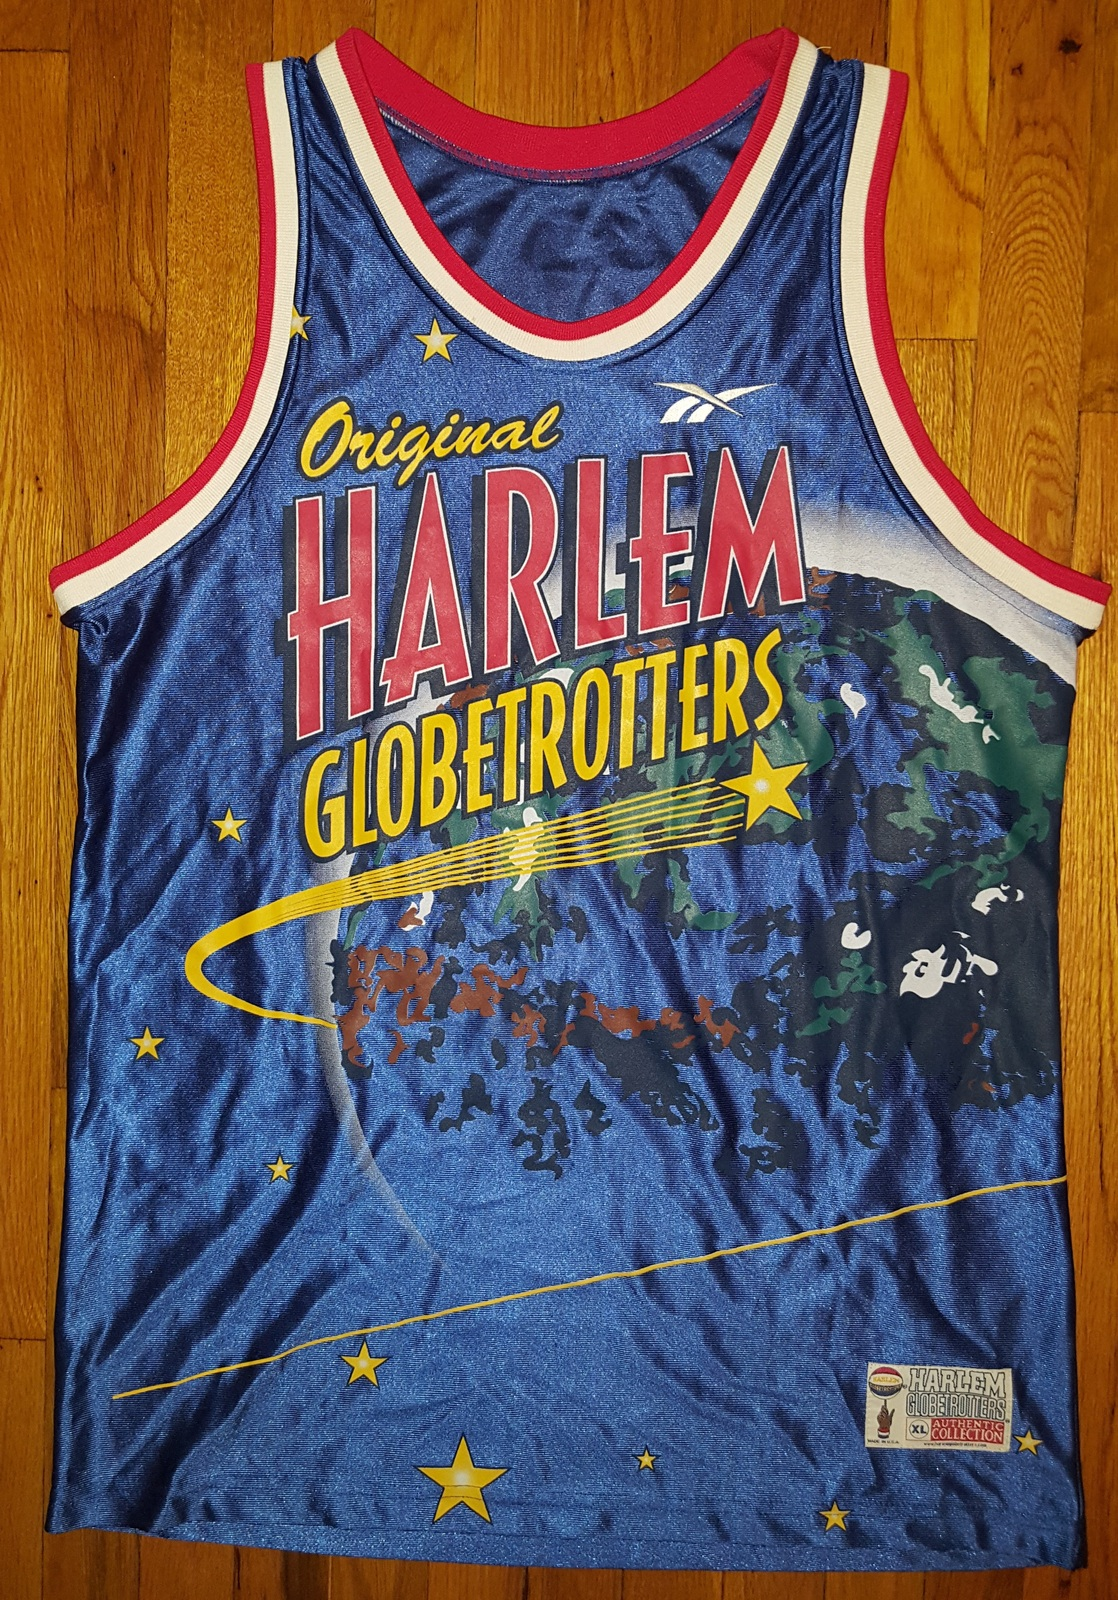 Primary image for Authentic Official Reebok Original Harlem Globetrotters Jersey XL Extra Large